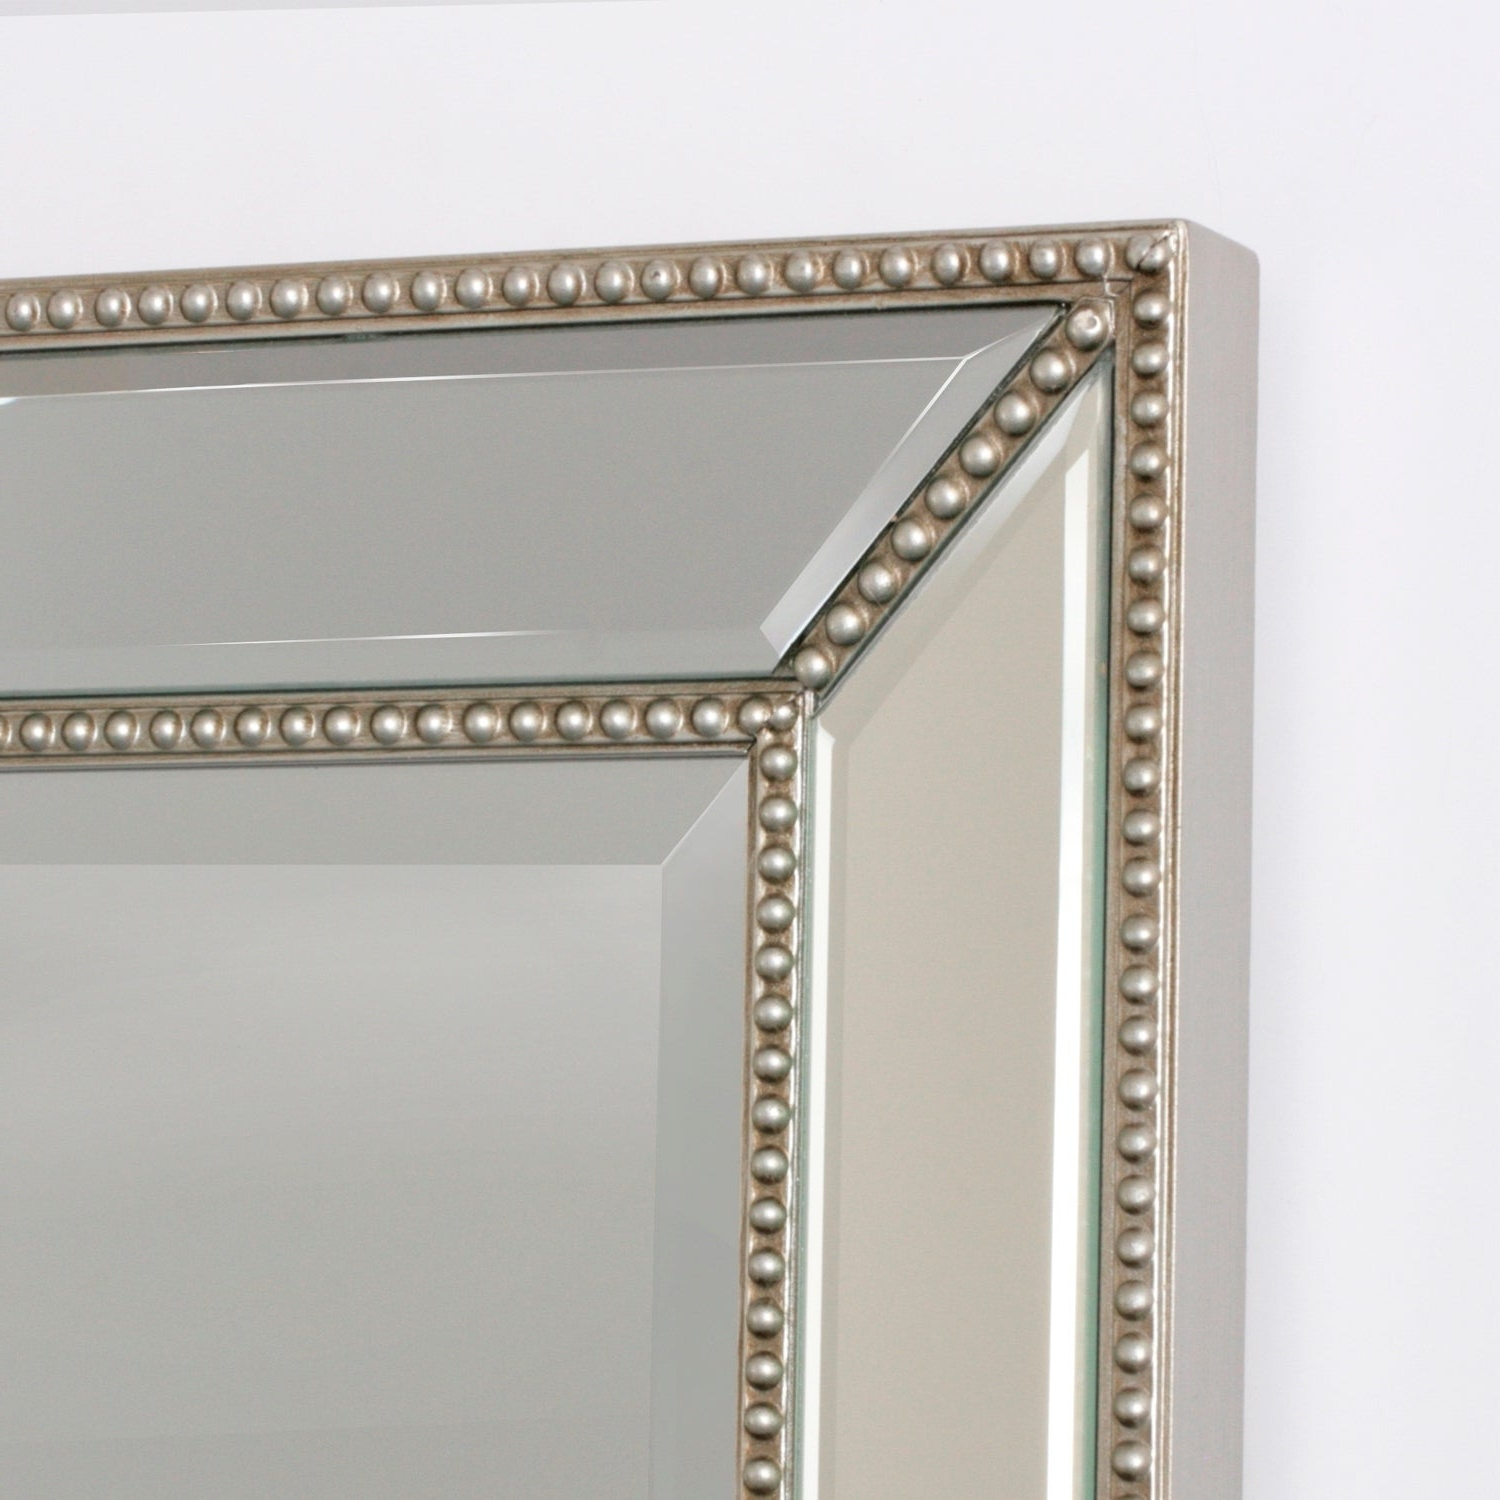 Silver Beaded Wall Mirrors Pertaining To Most Popular Headwest Metro Beaded Wall Mirror – Silver/champagne – 20x (View 15 of 20)